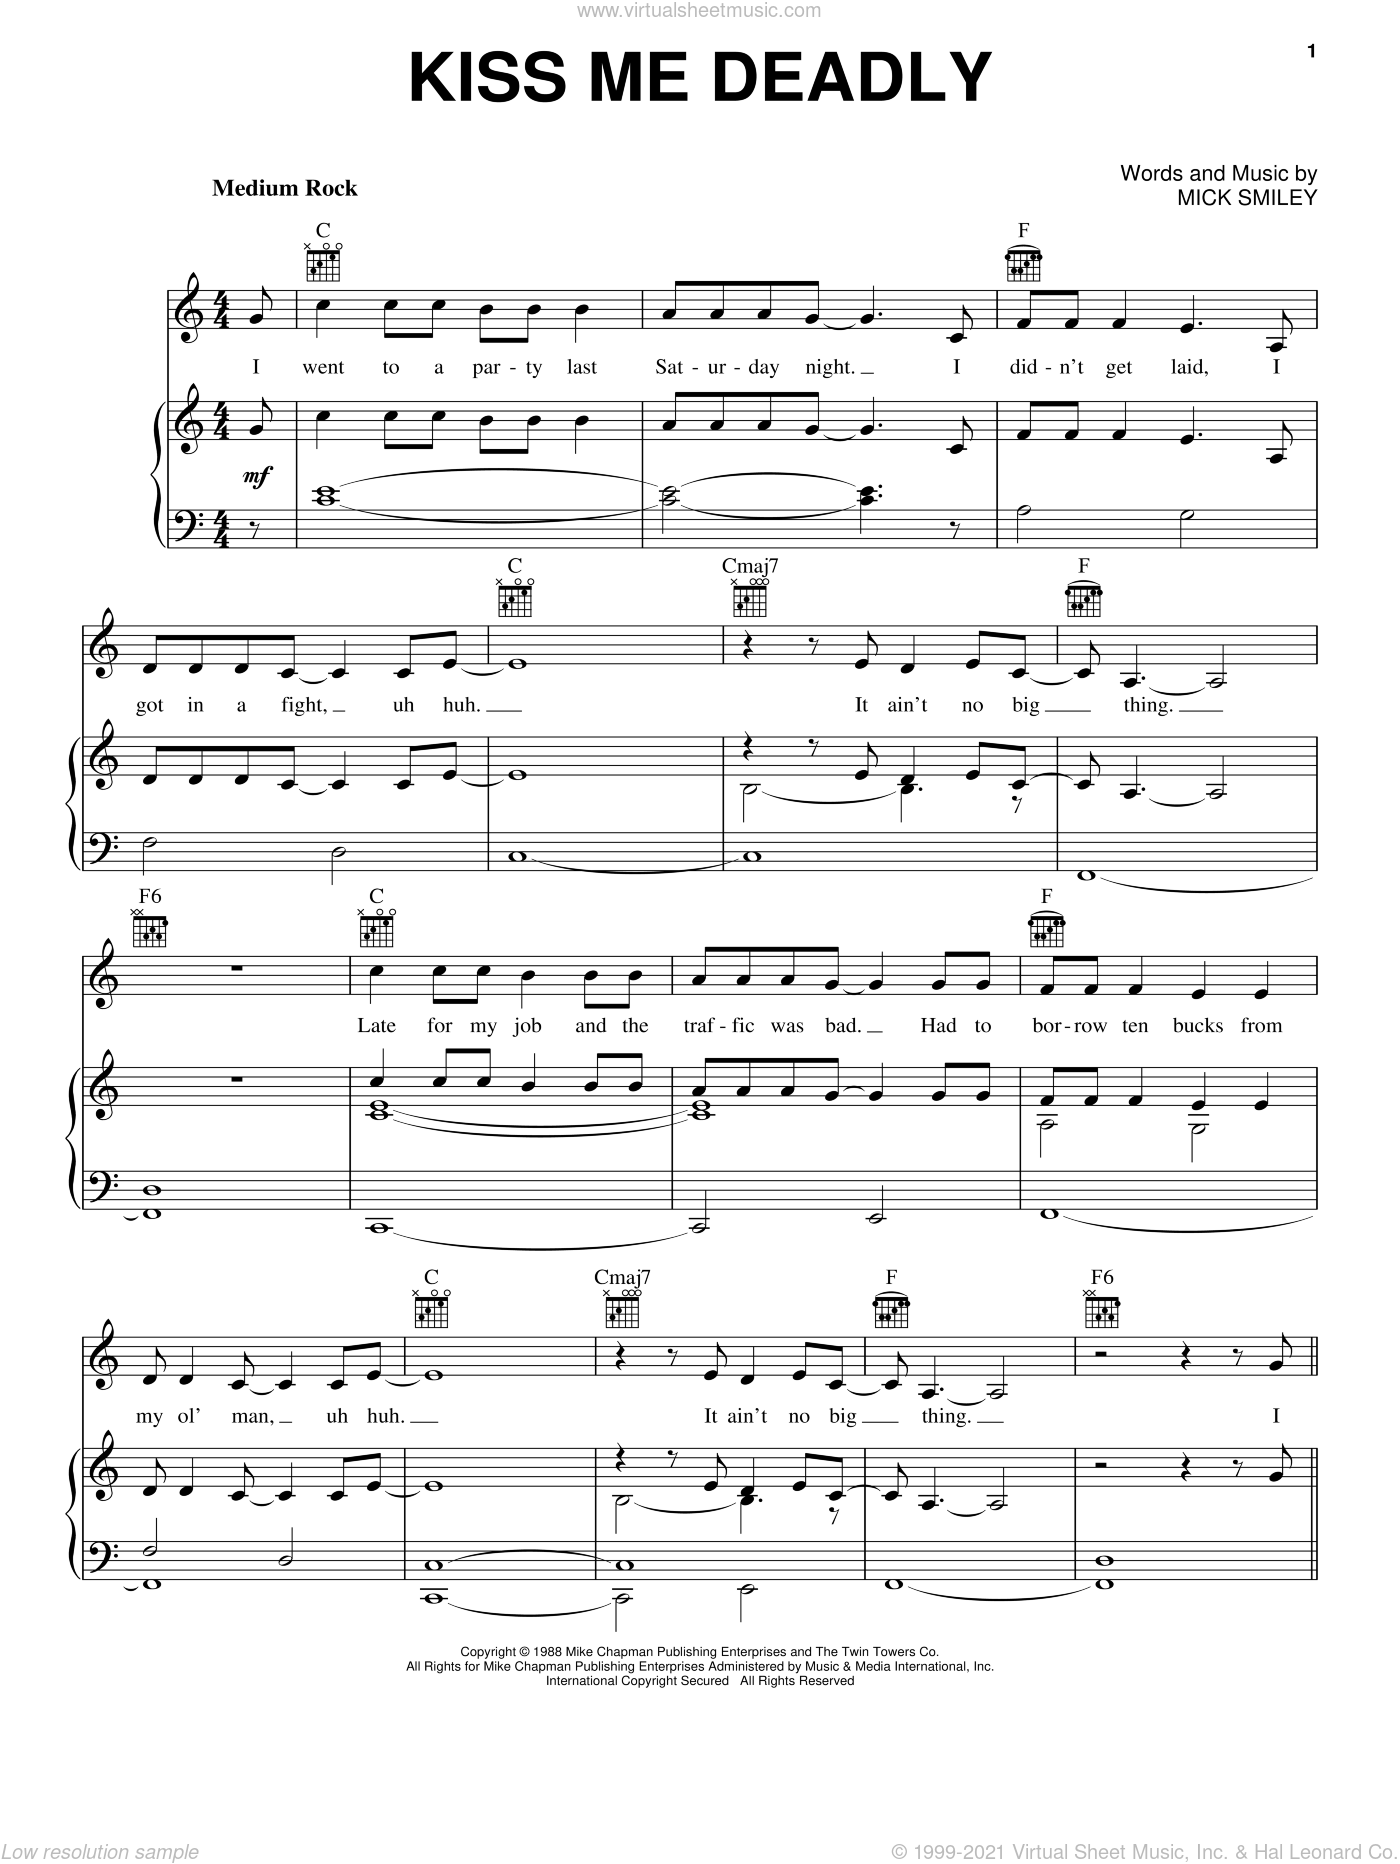 Kiss Me Deadly sheet music for voice, piano or guitar by Mick Smiley